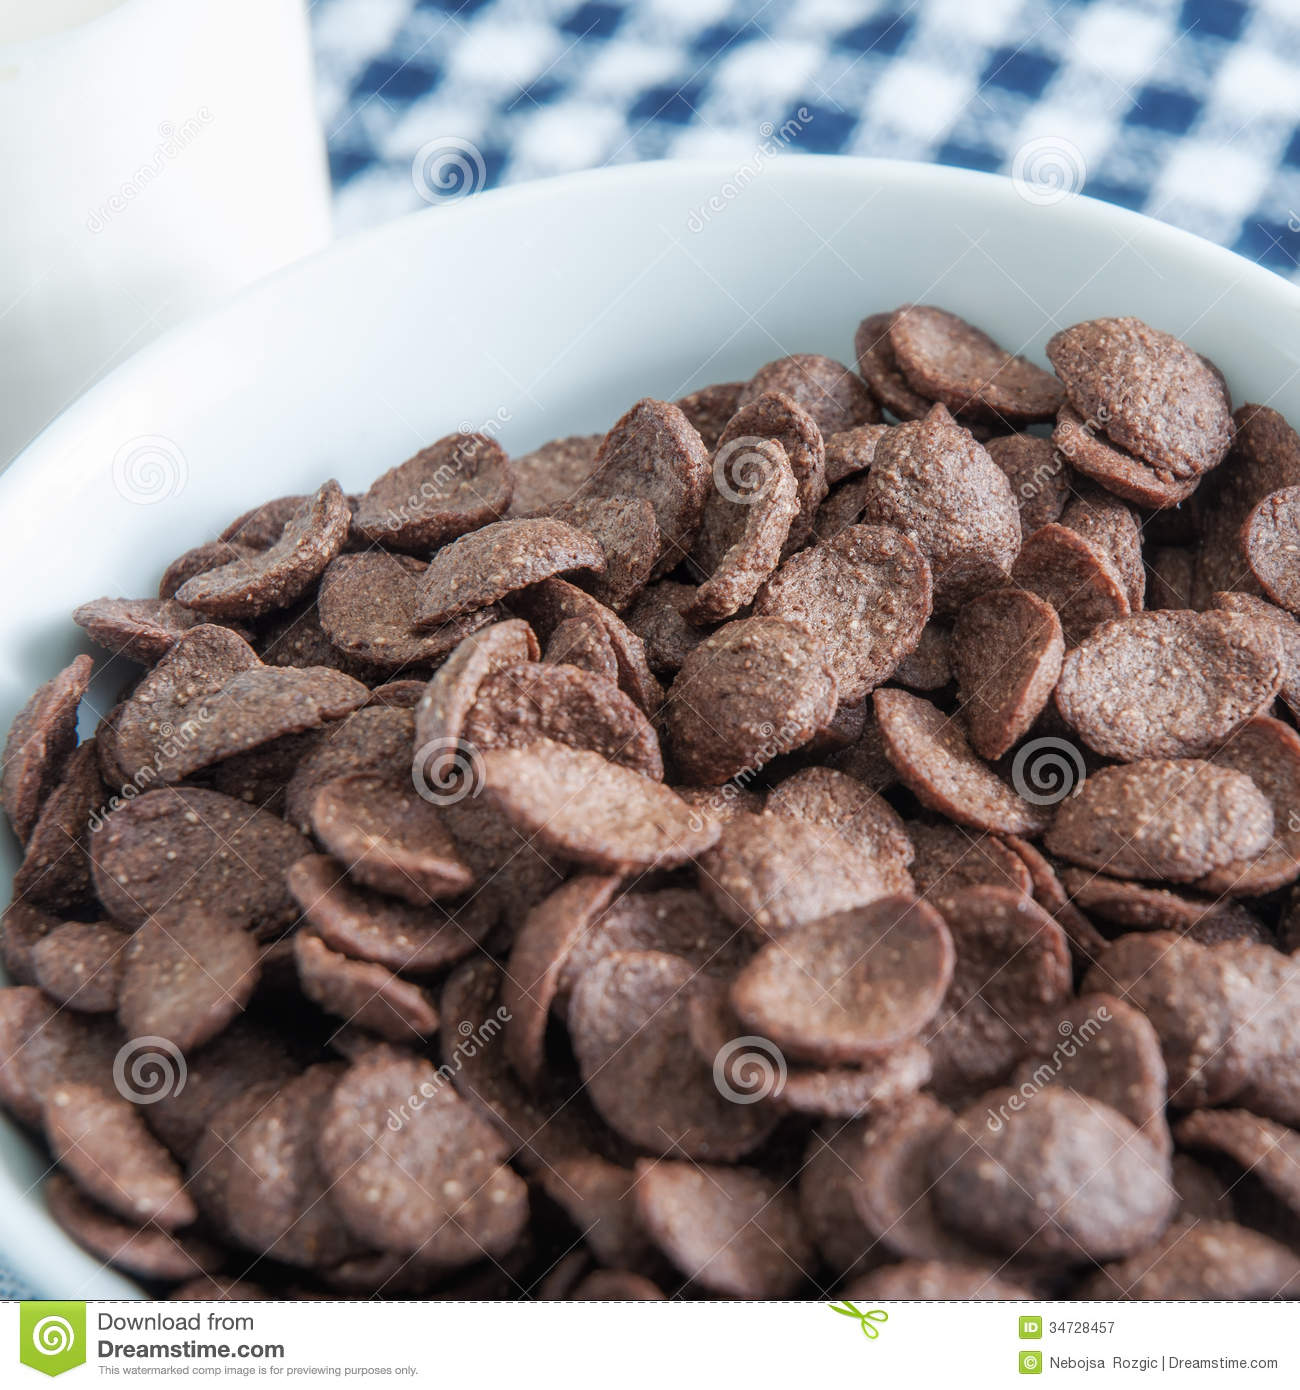 Chocolate Cereal Royalty Free Stock Photography - Image: 34728457